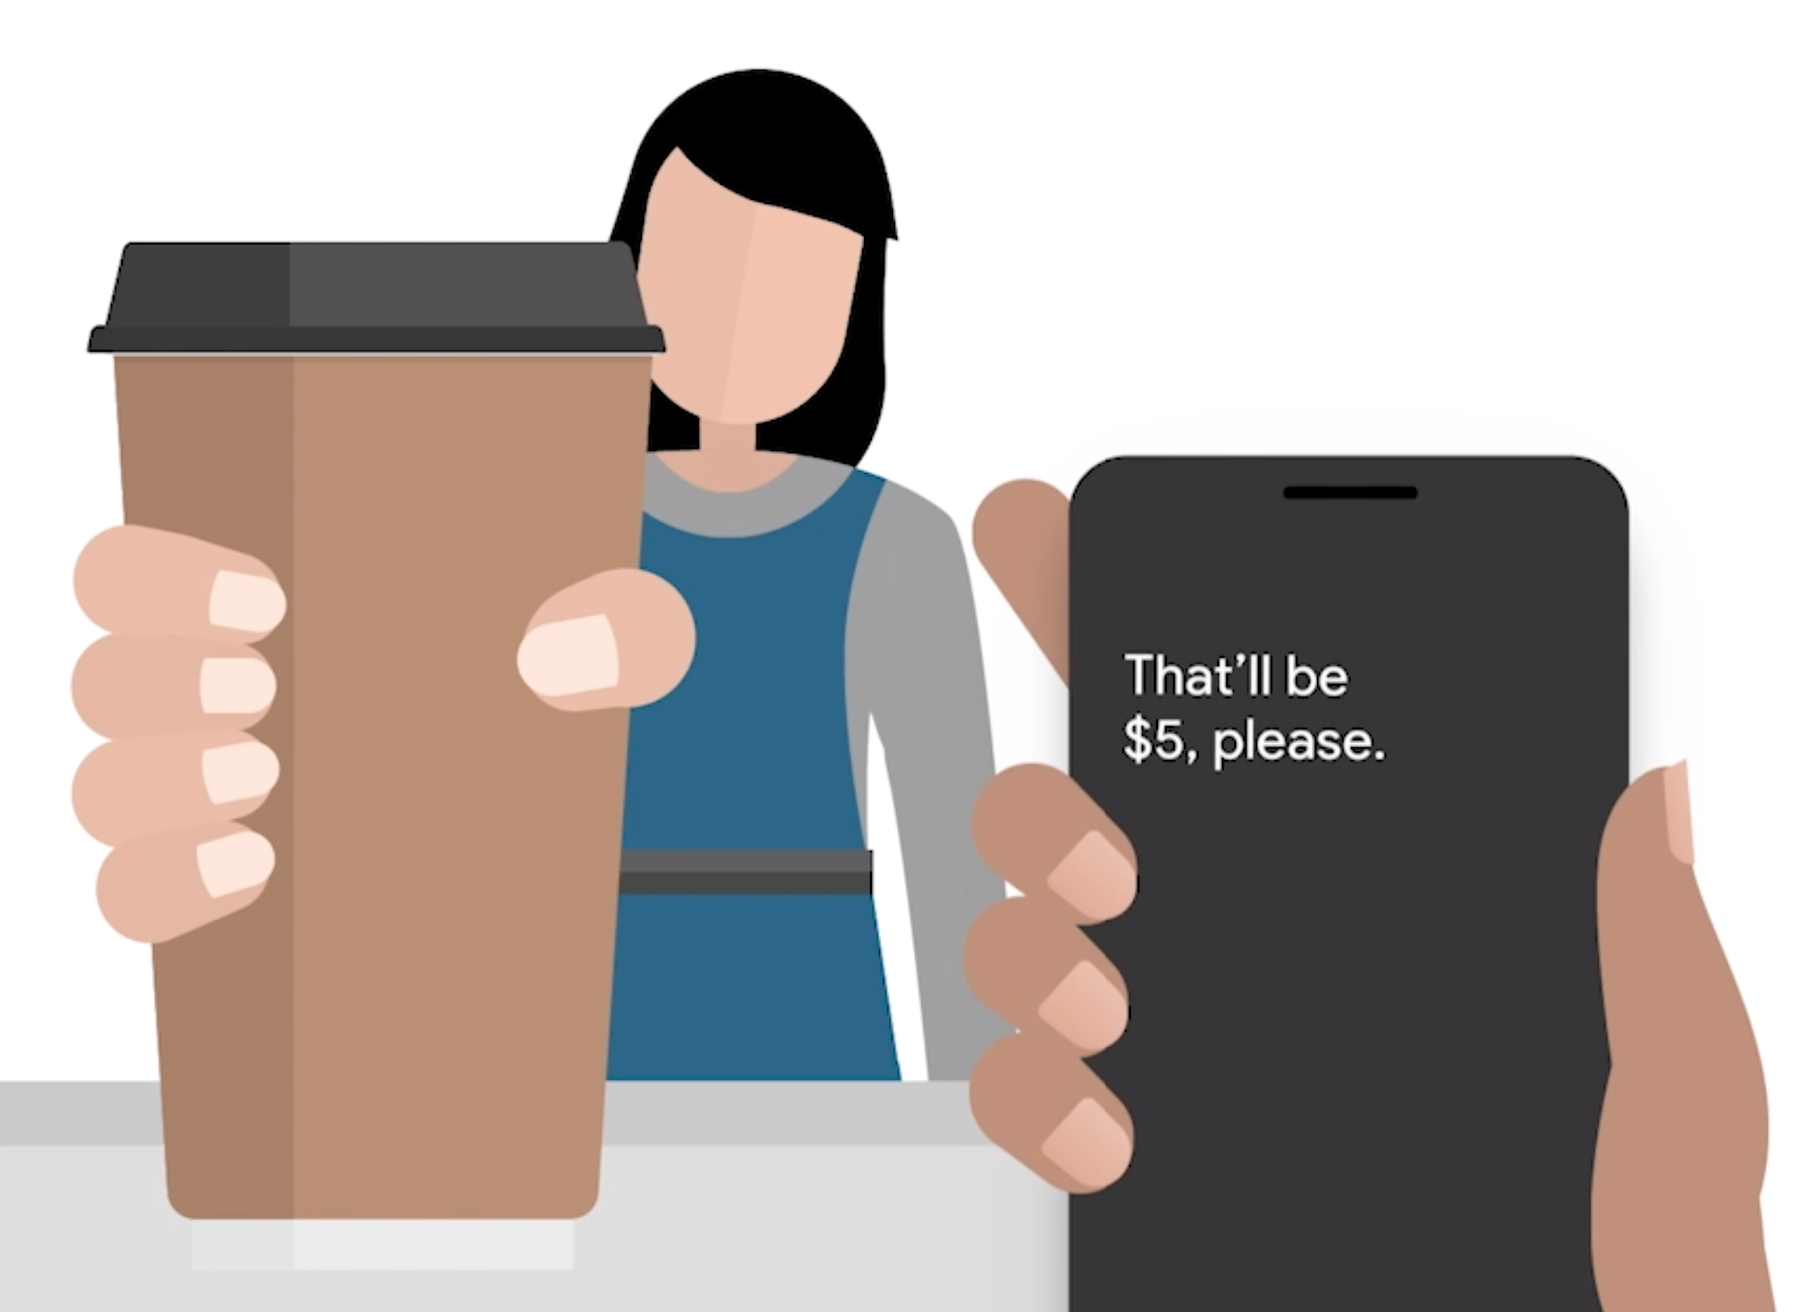 Cartoon image of a person using Live Transcribe to buy a coffee